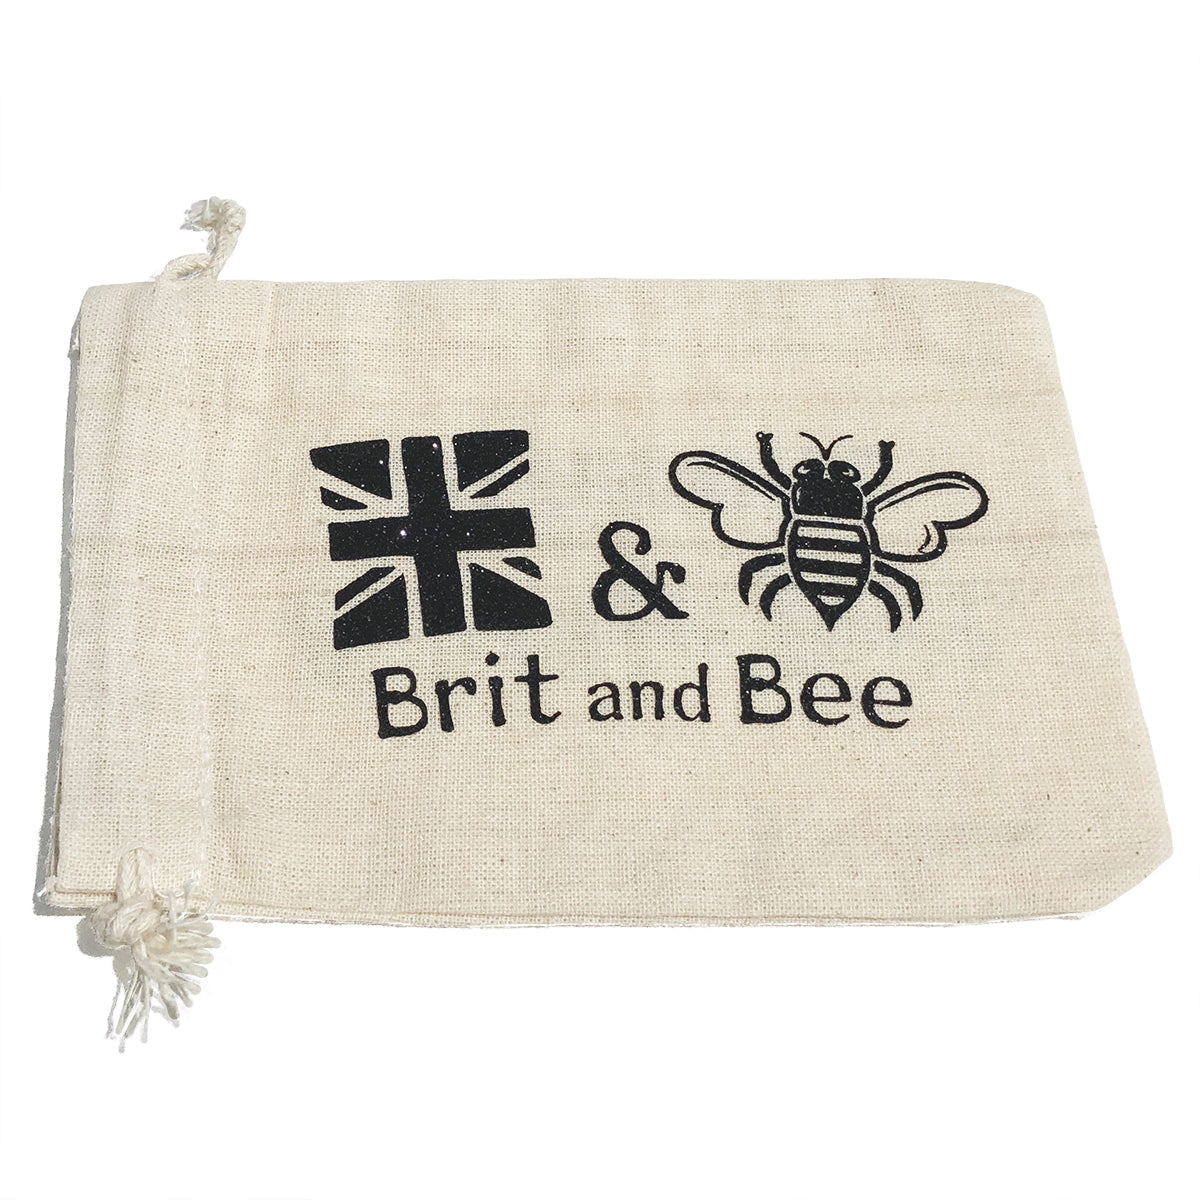 Brit and Bee Sorority Car Coasters - Alpha Omicron Pi